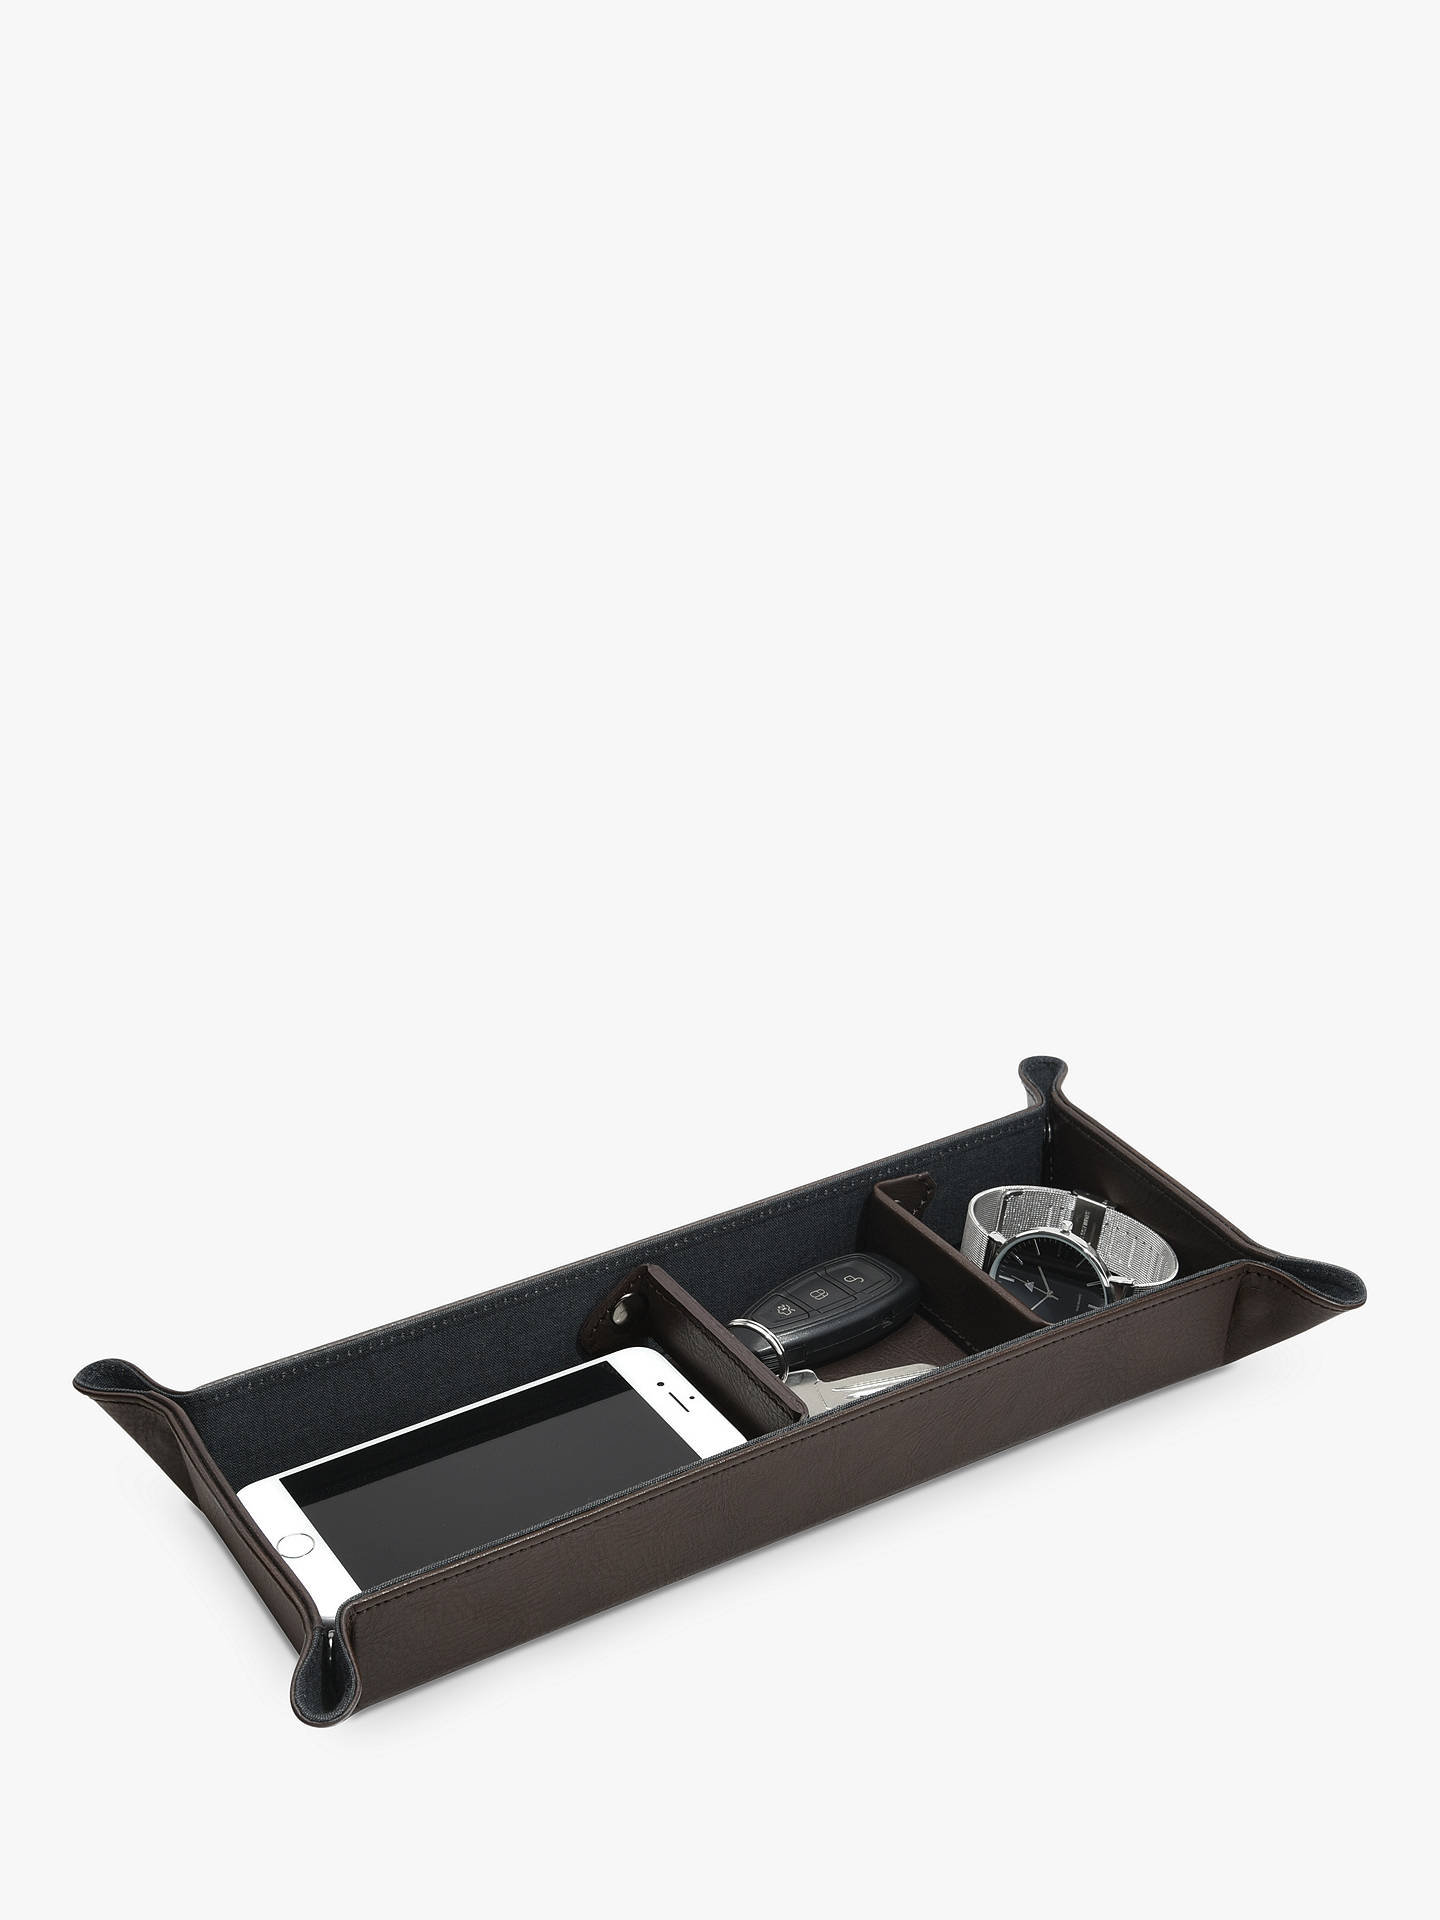 BuyStackers Large Catchall, Brown Online at johnlewis.com